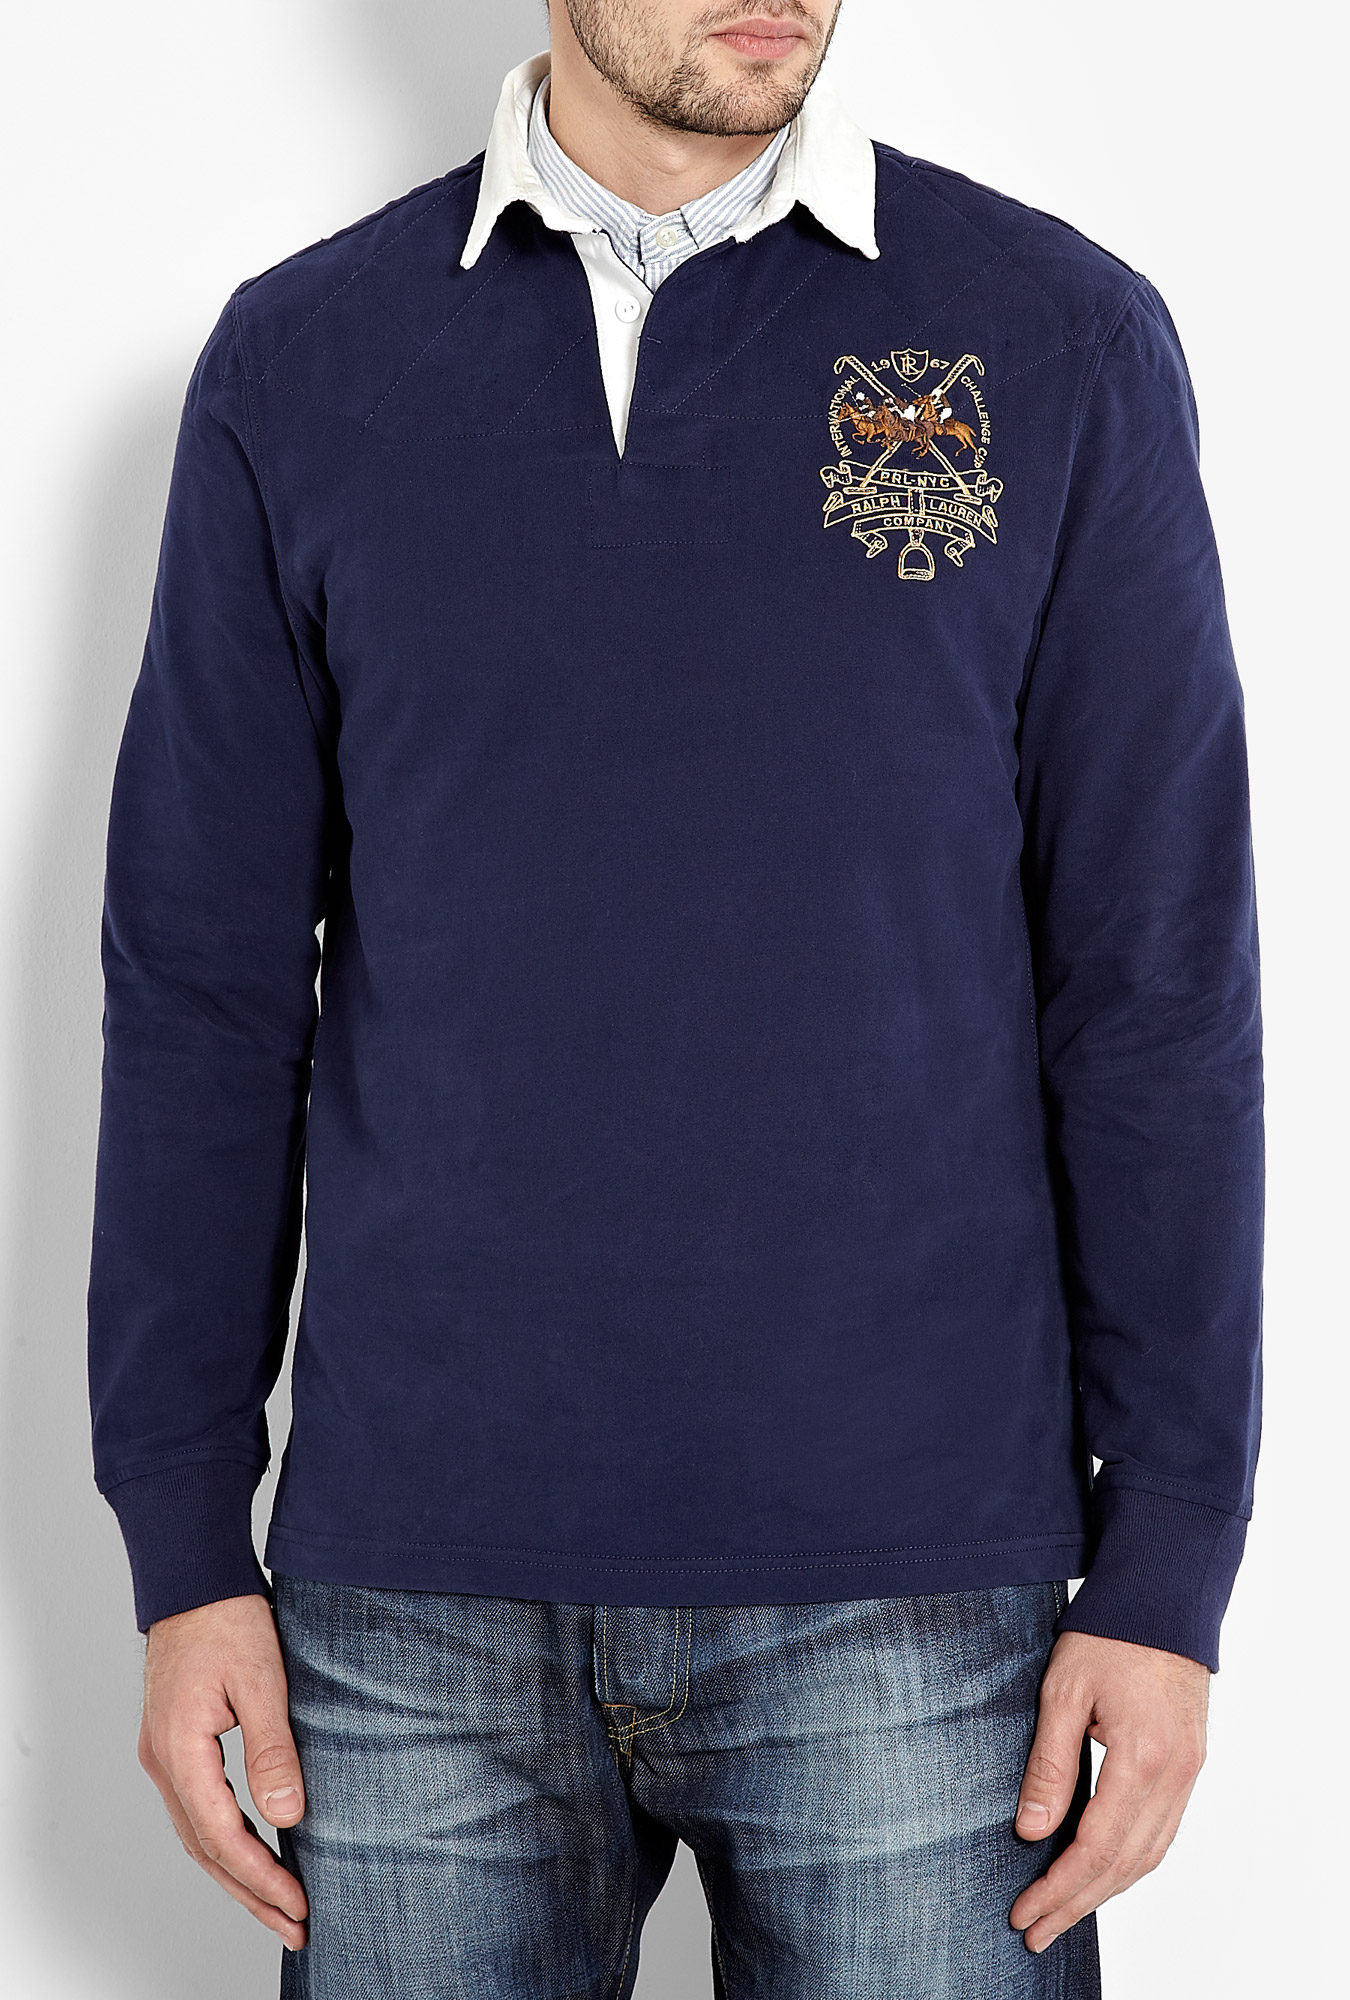 Polo Ralph Lauren Navy Polo Club Rugby Shirt In Blue For